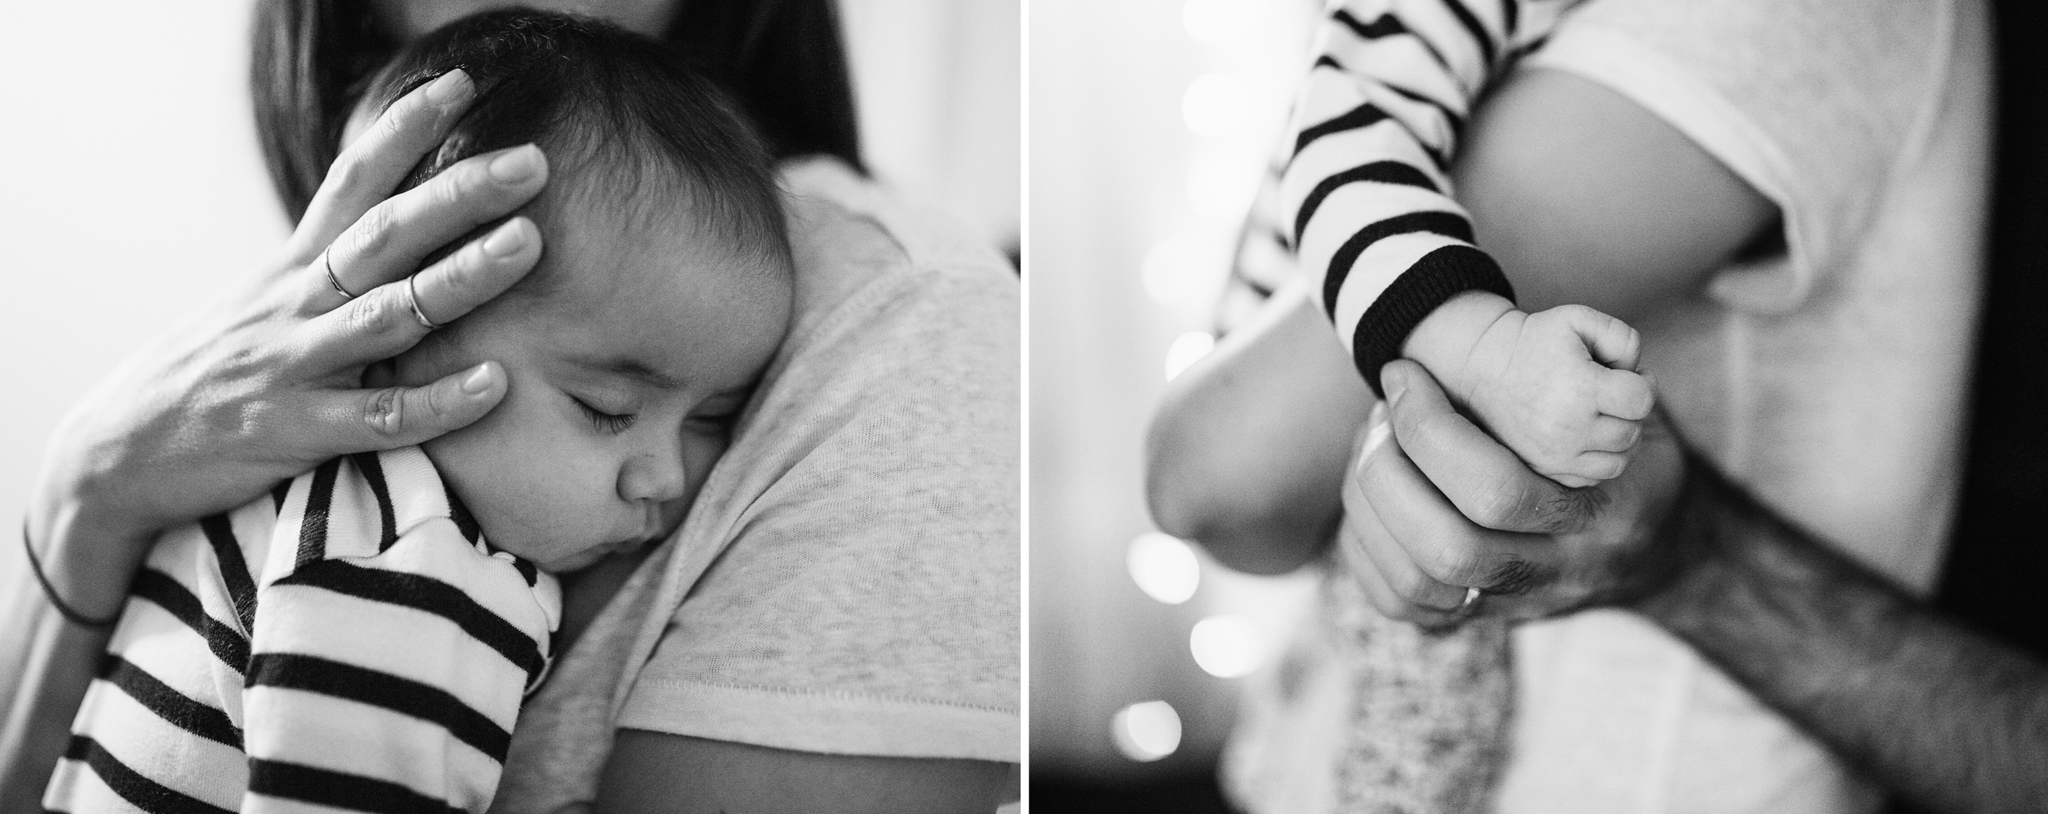 Vancouver At Home Lifestyle Newborn Photographer - Emmy Lou Virginia Photography-34.jpg